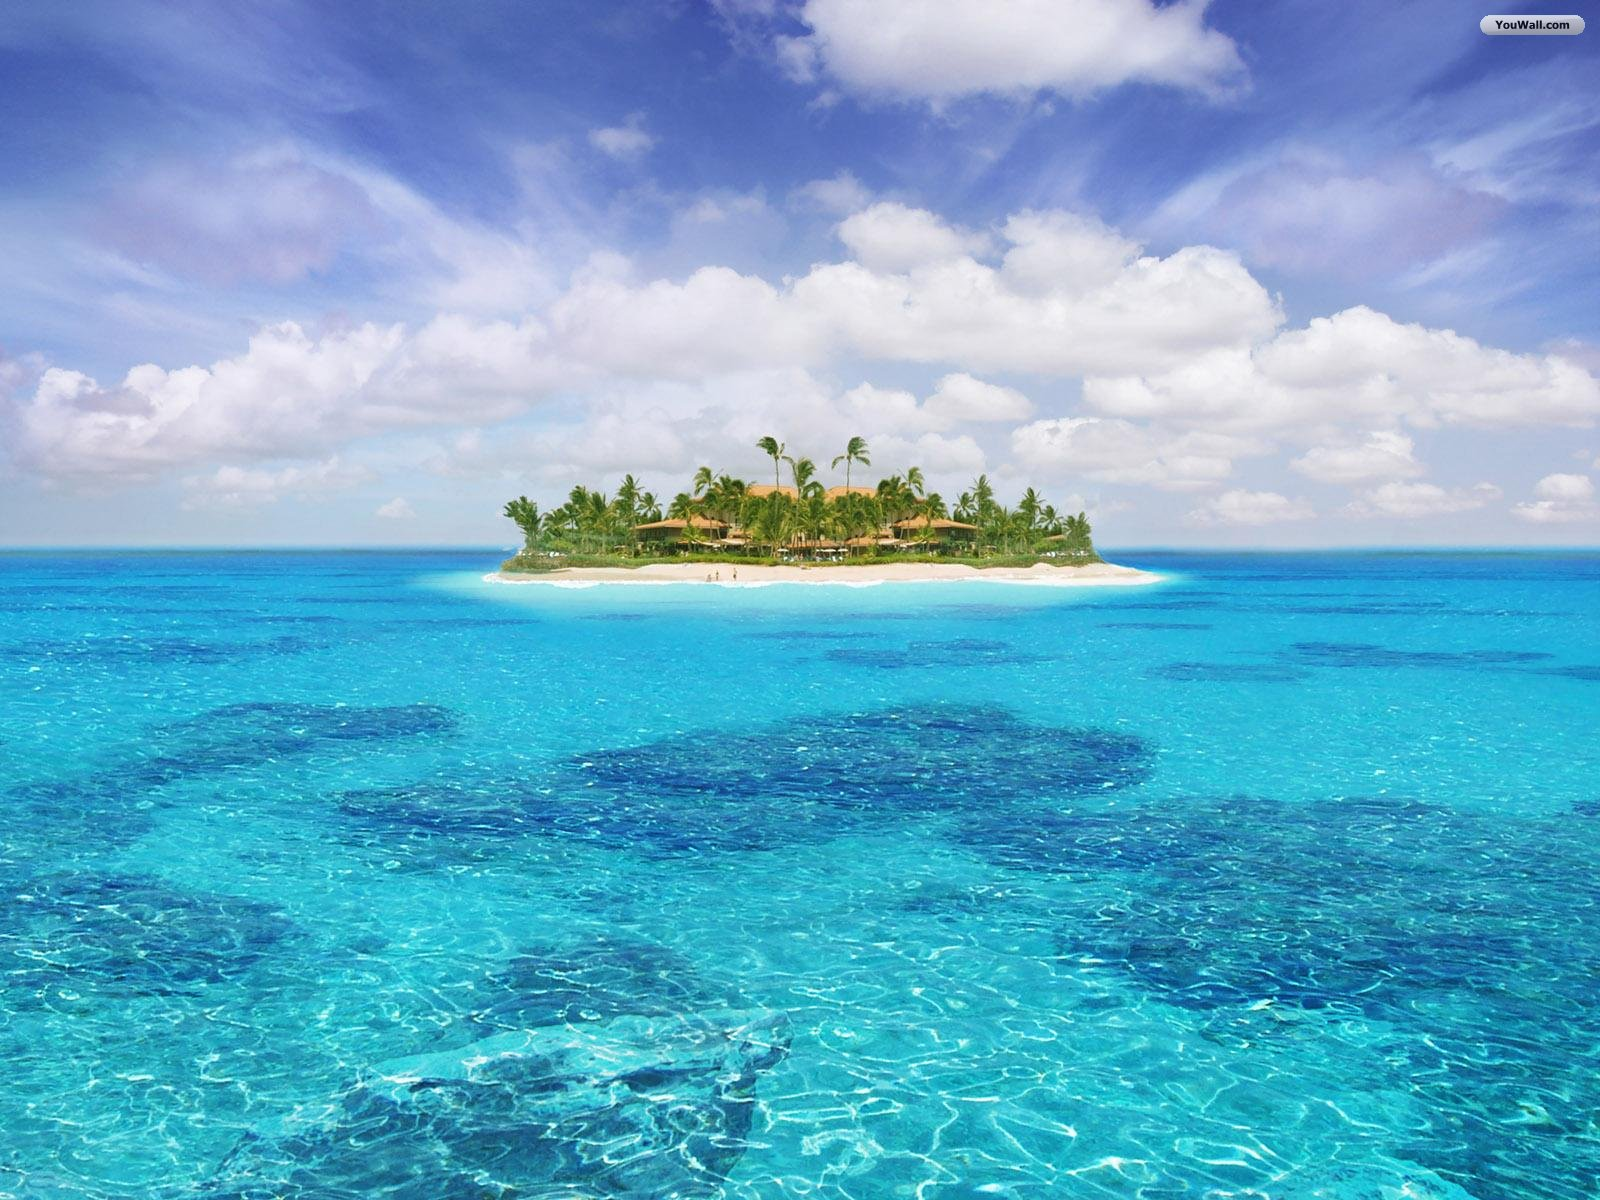 Island Wallpaper   wallpaperwallpapersfree wallpaperphotodesktop 1600x1200